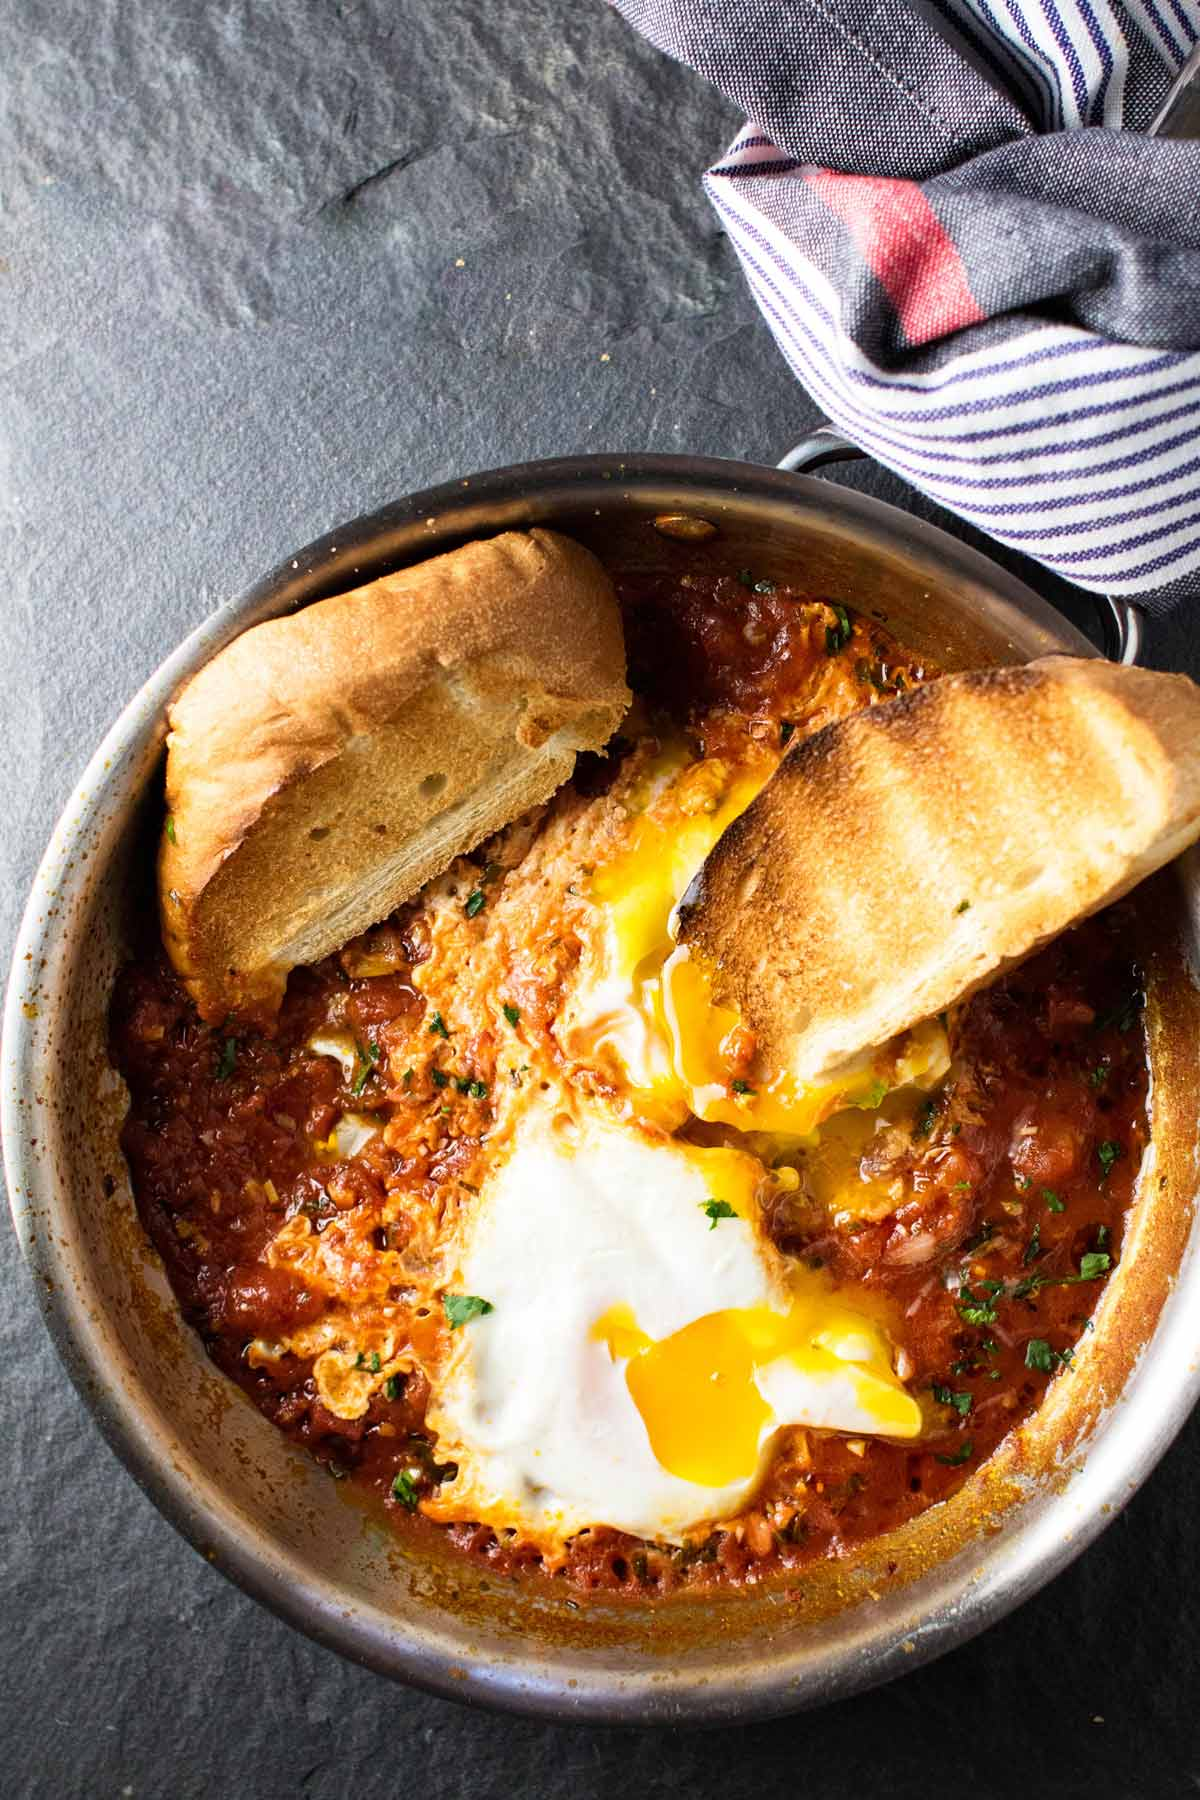 Two pieces of toast with eggs in purgatory in a skillet.